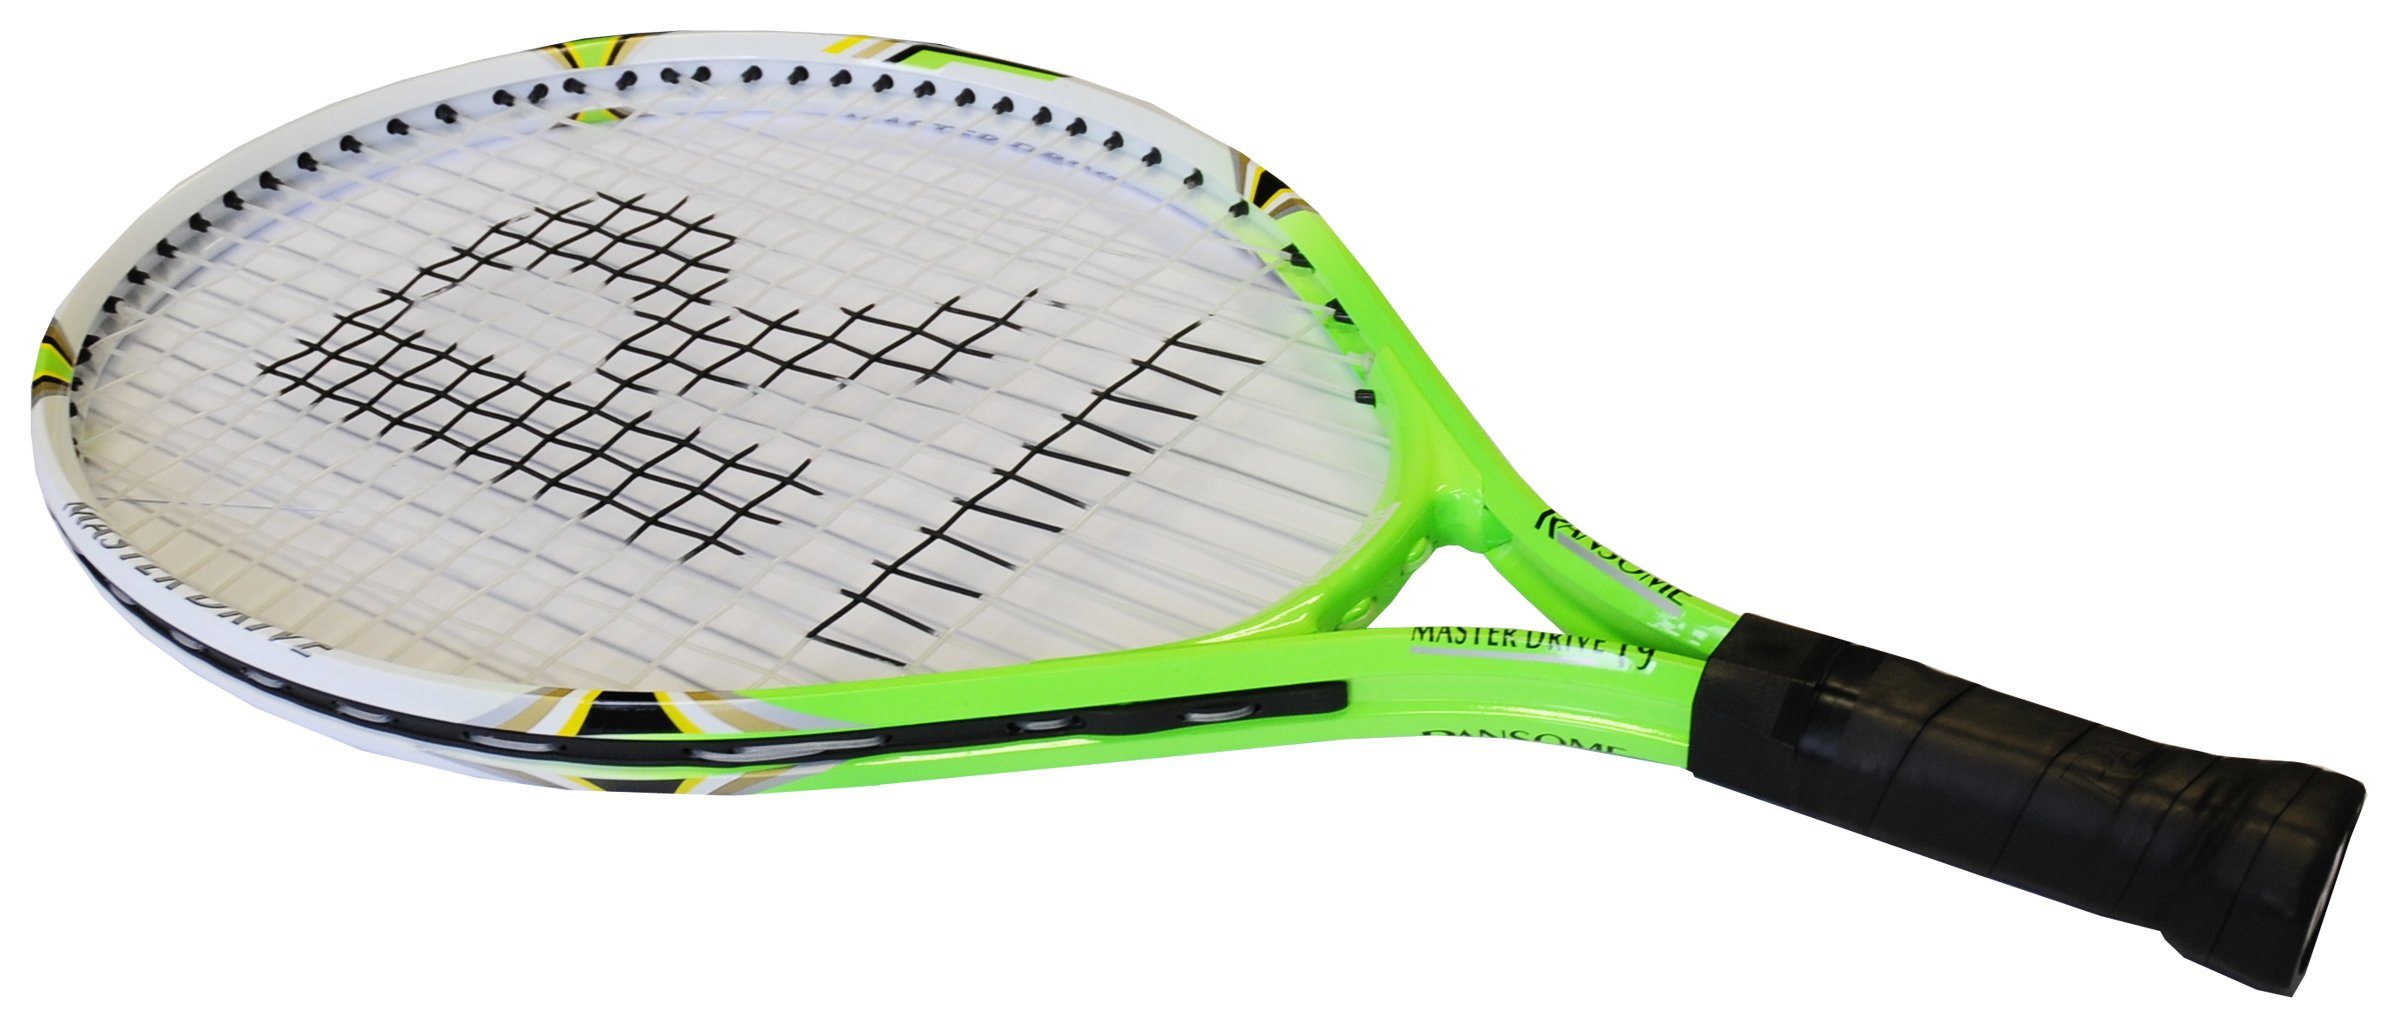 ransome-master-drive-19-inch-junior-tennis-racket